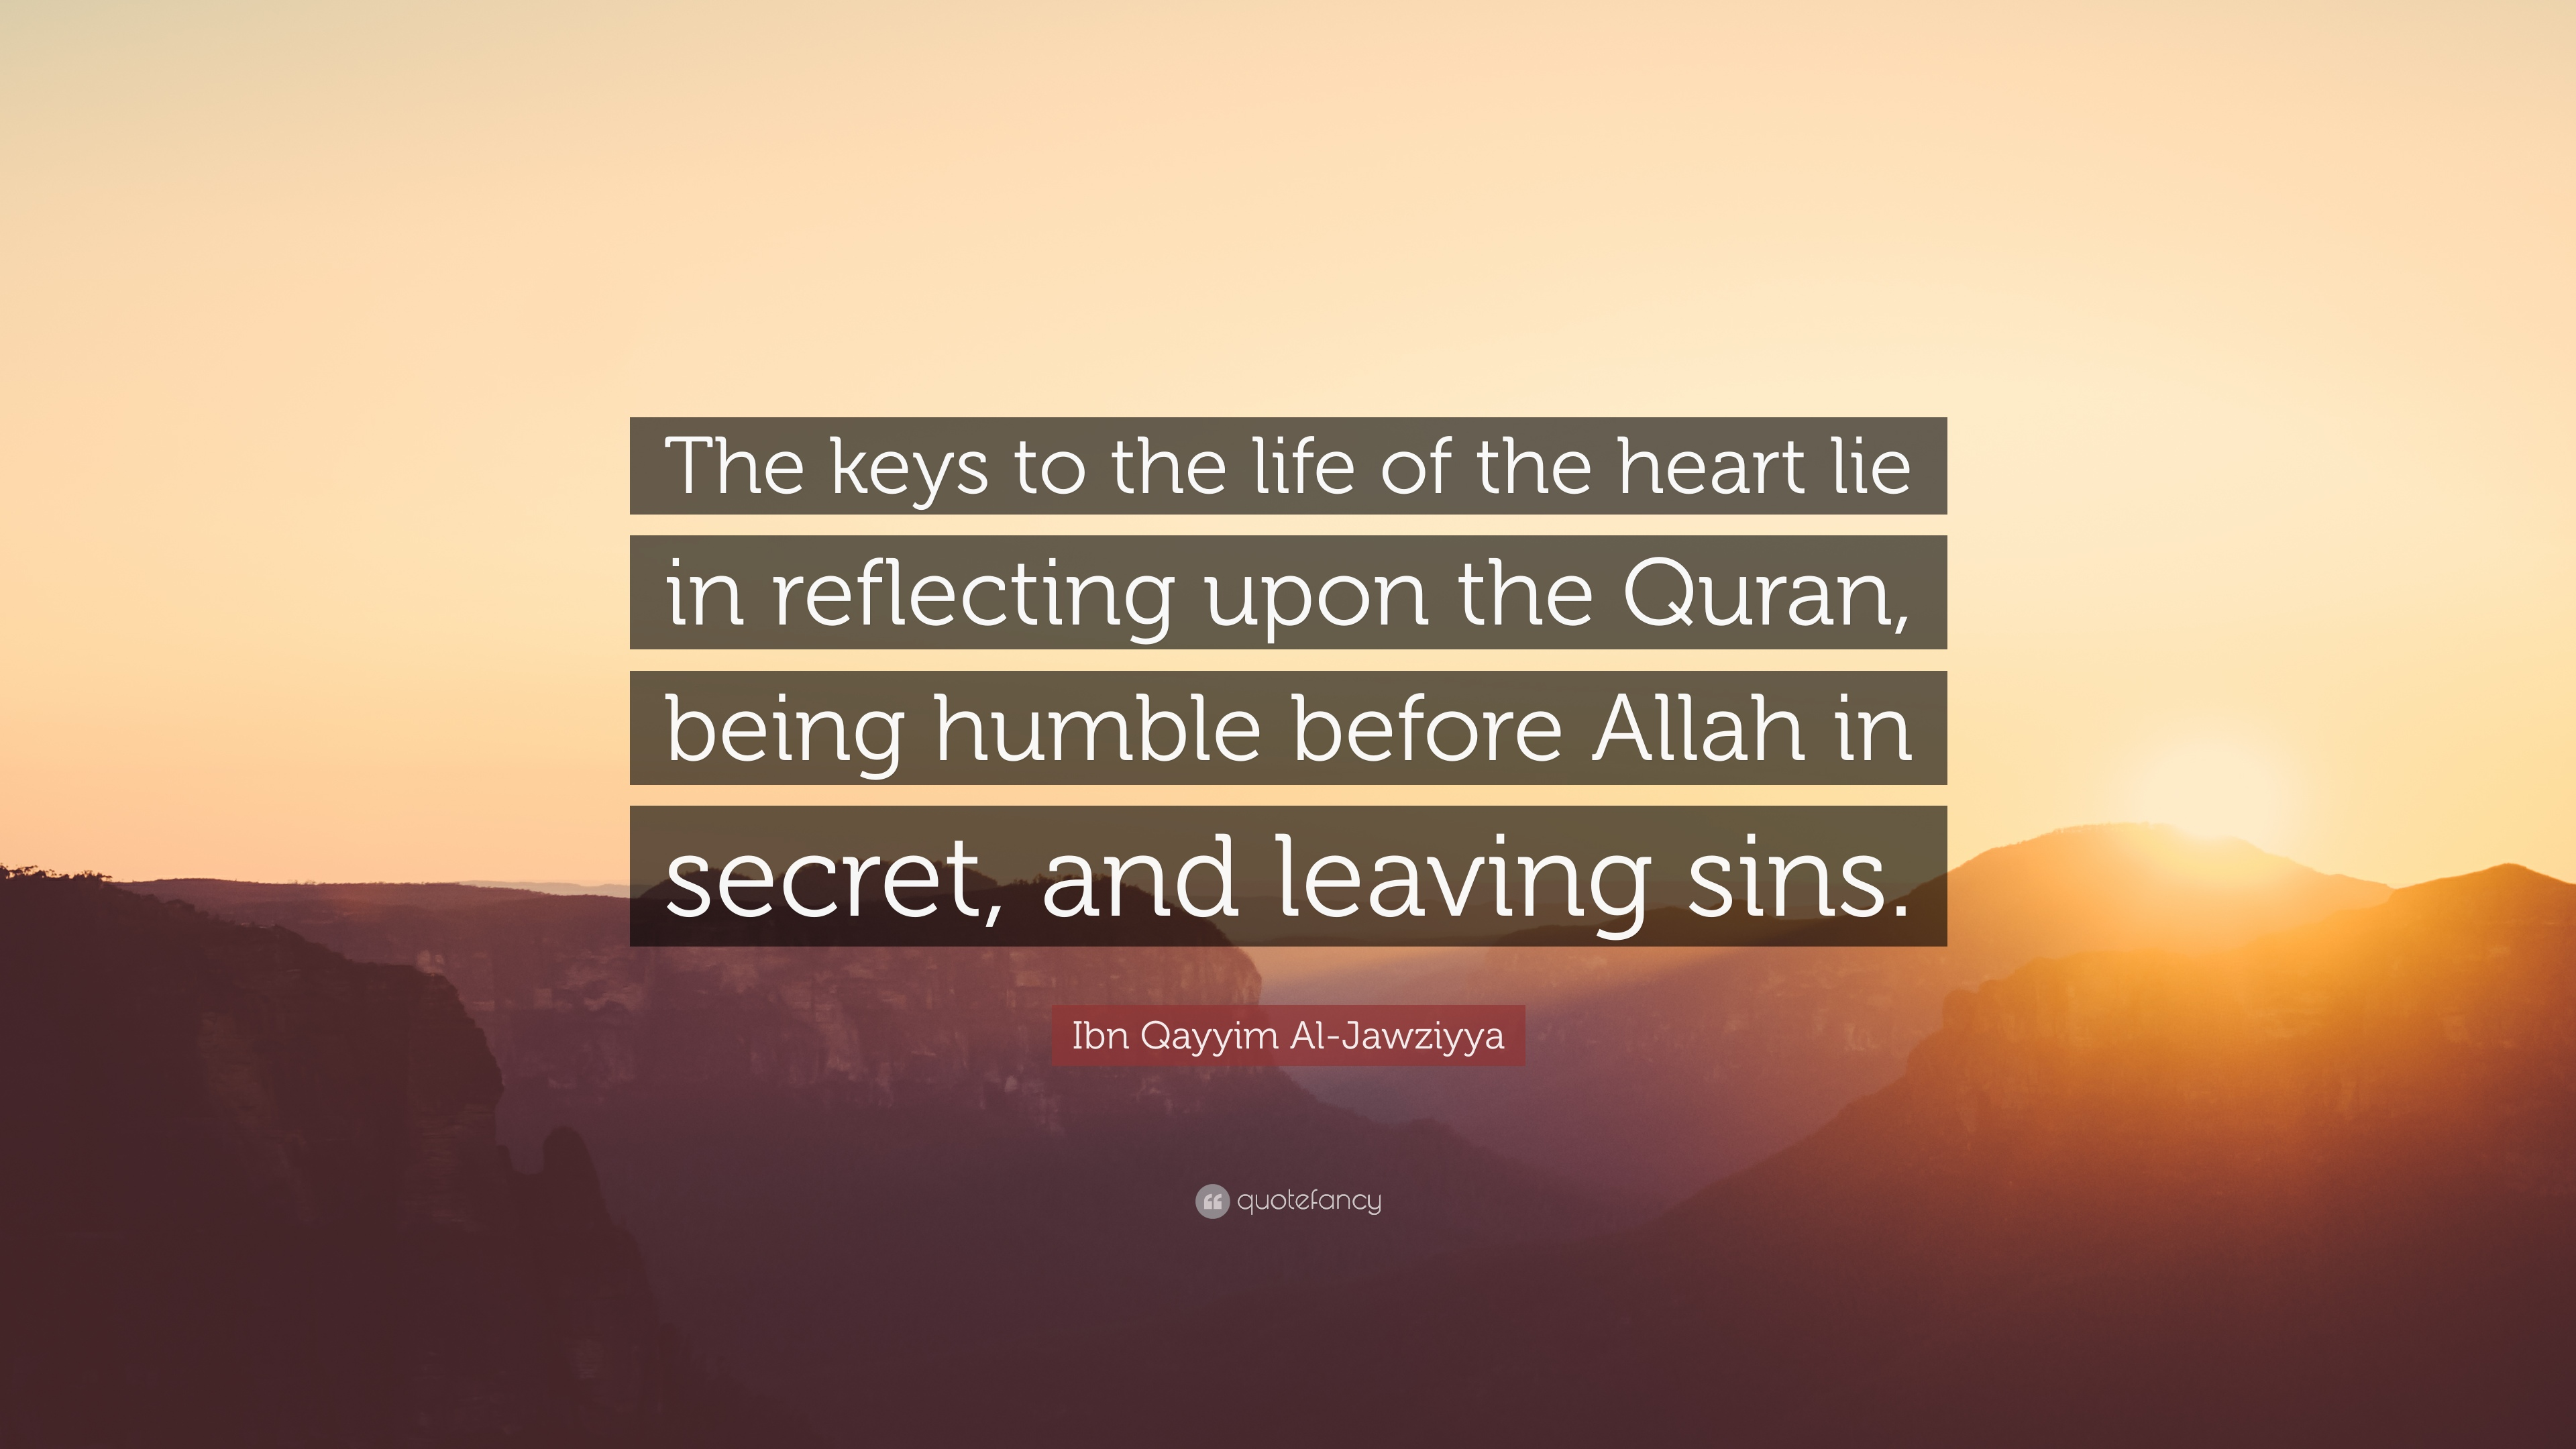 Ibn Qayyim Al Jawziyya Quote The Keys To The Life Of The Heart Lie